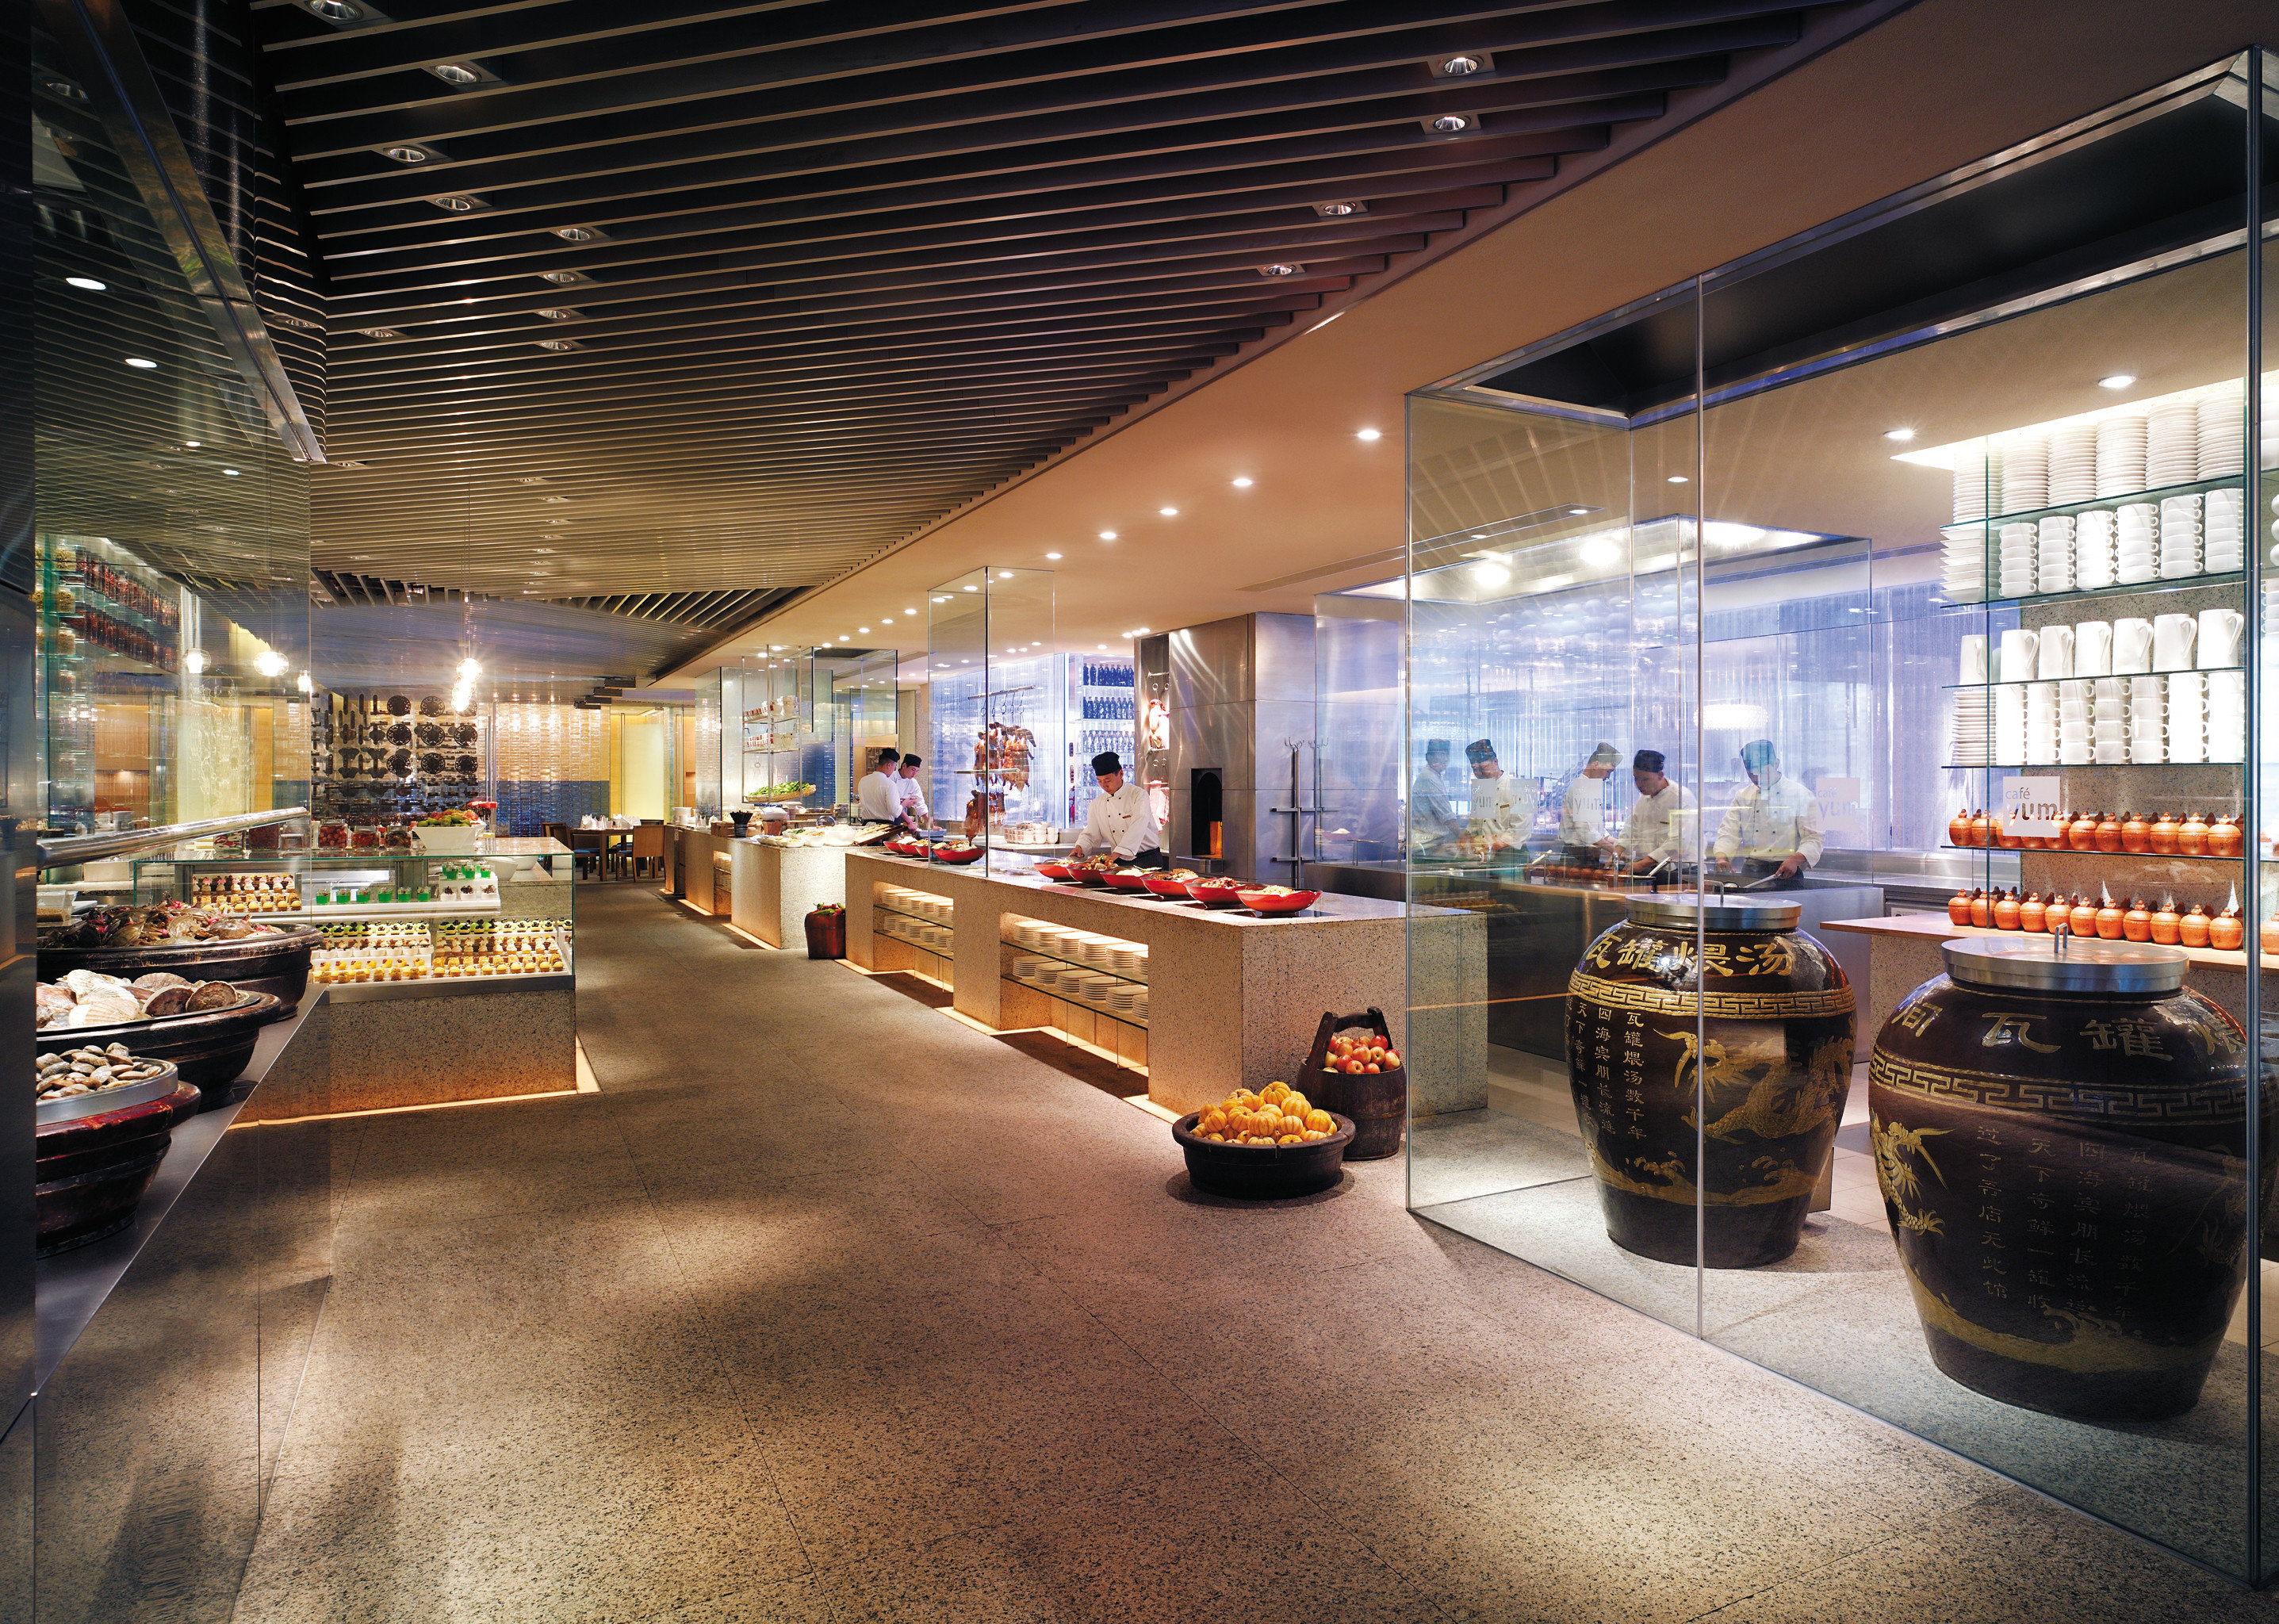 Bar Dining Drink Eat Modern building retail Lobby infrastructure shopping mall restaurant